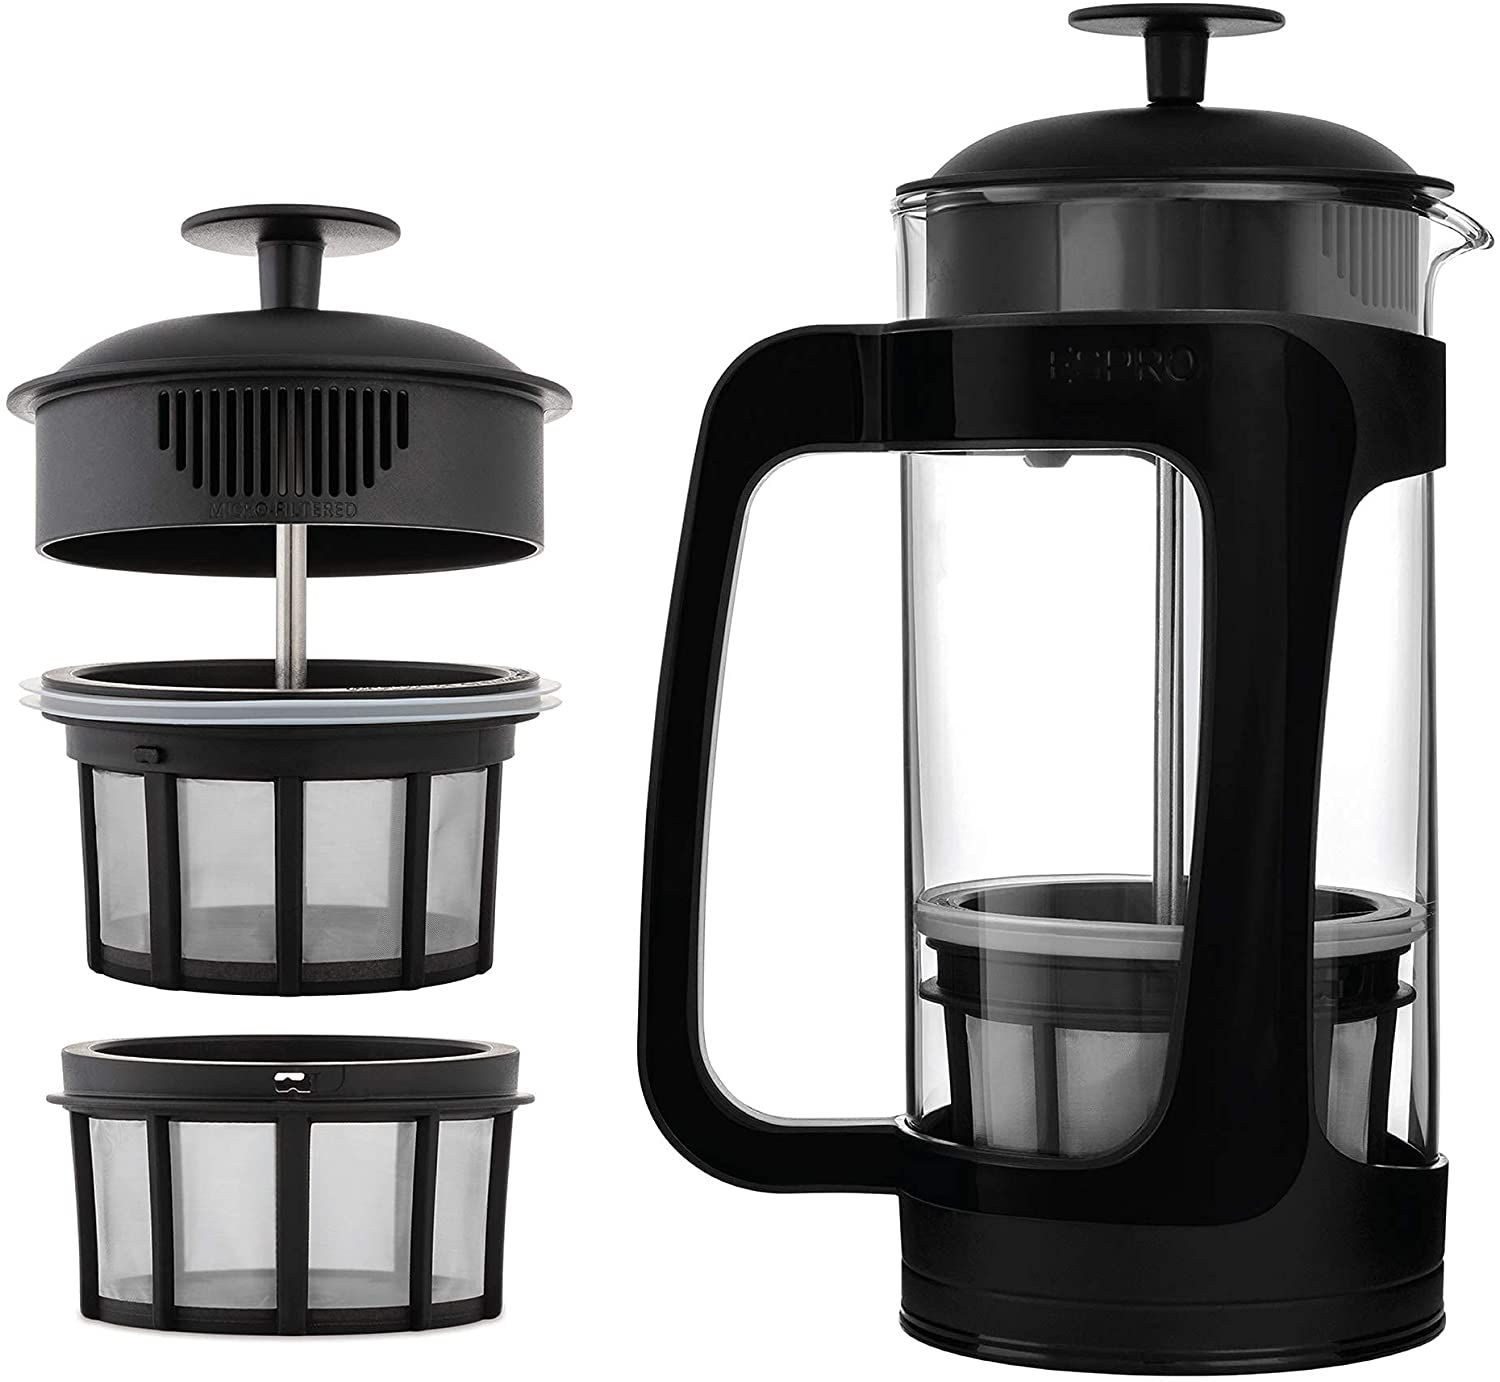 ESPRO Everyday P3 Double Micro-Filtered Coffee French Press